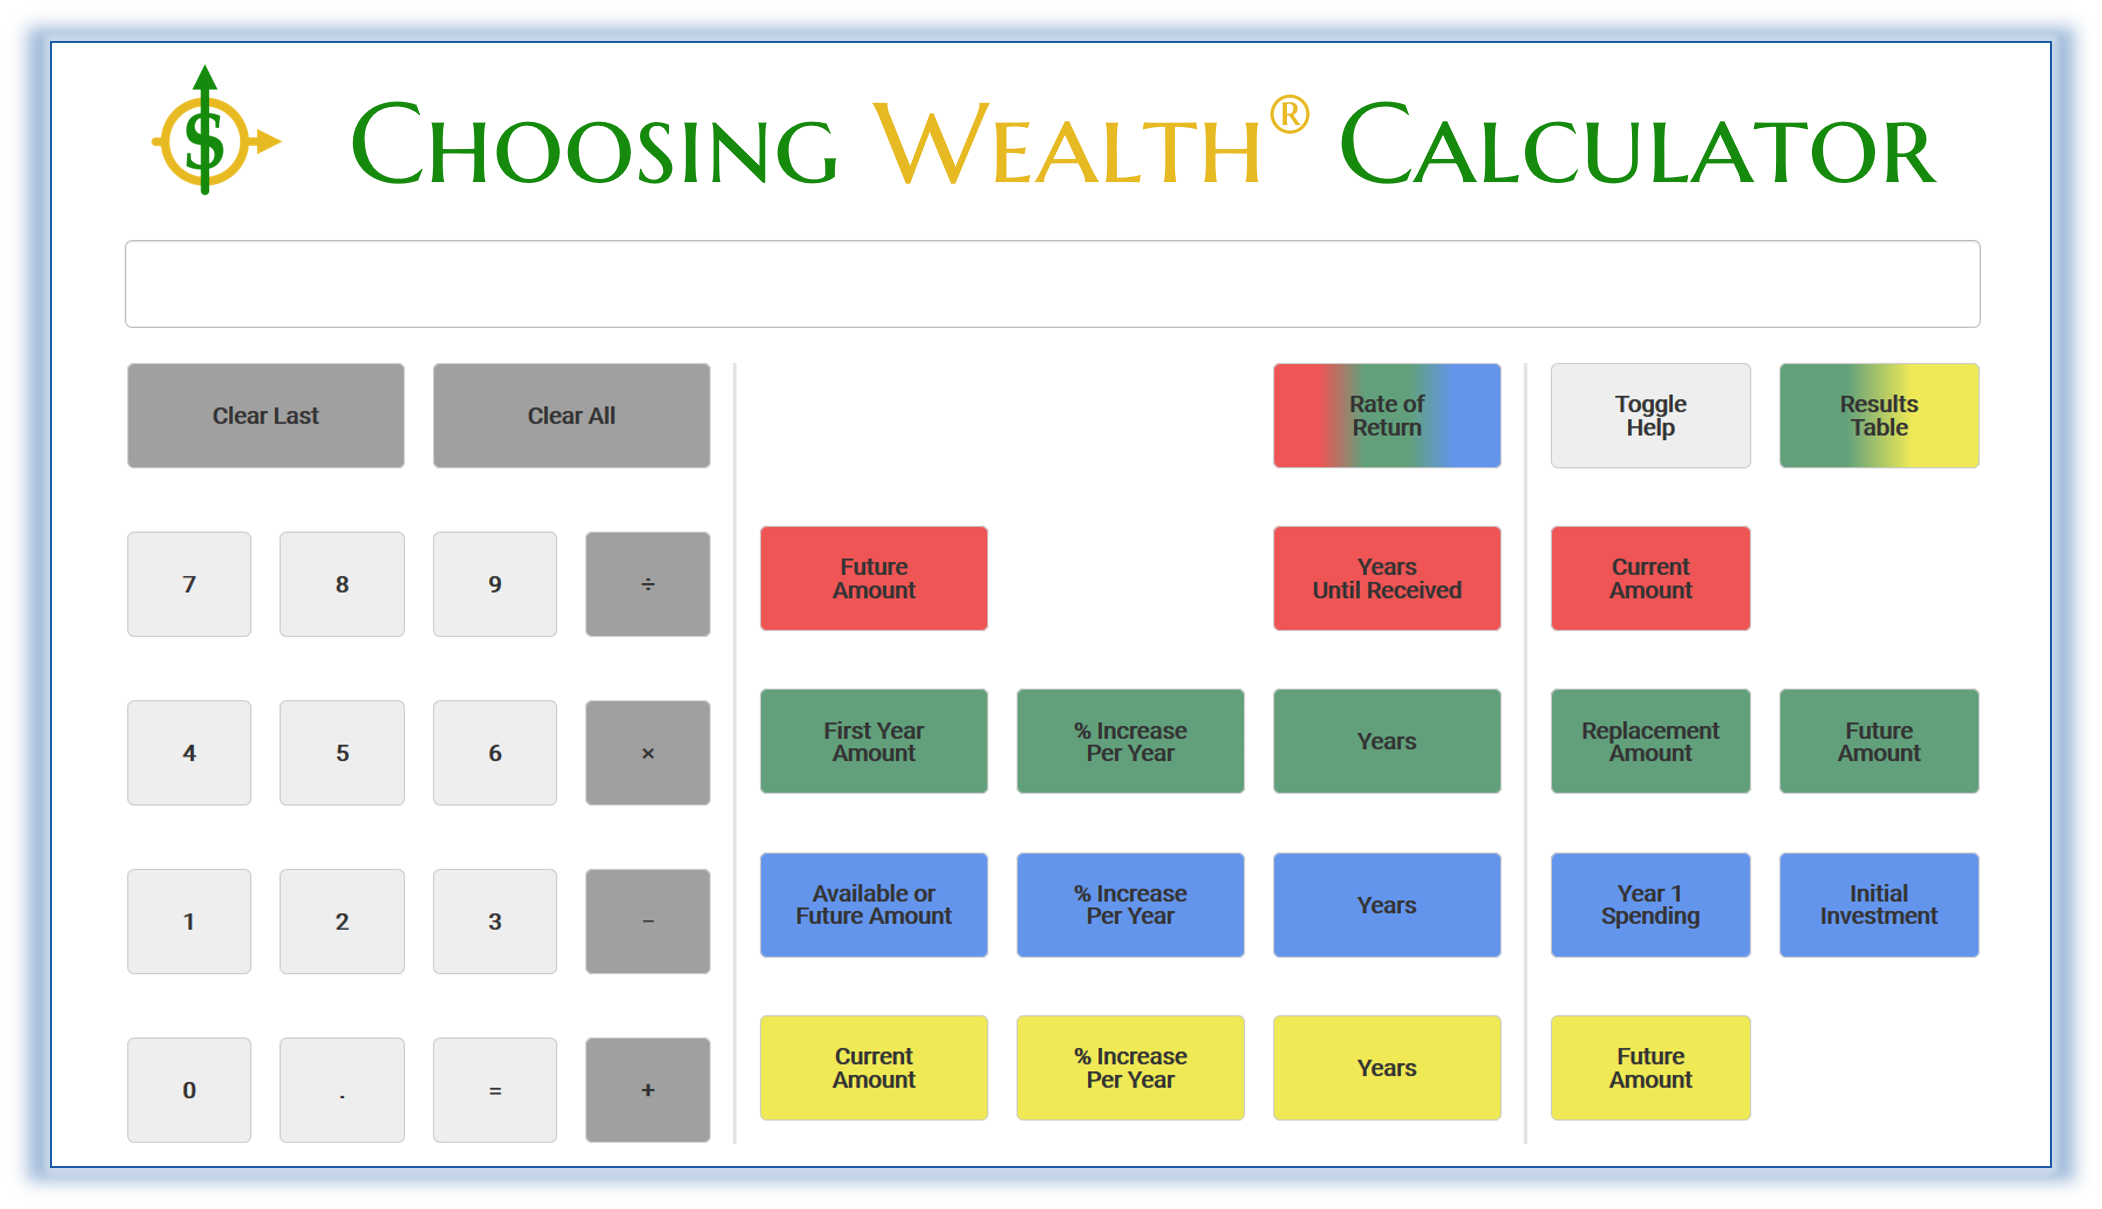 Image of the Choosing Wealth® Calculator screen simulation